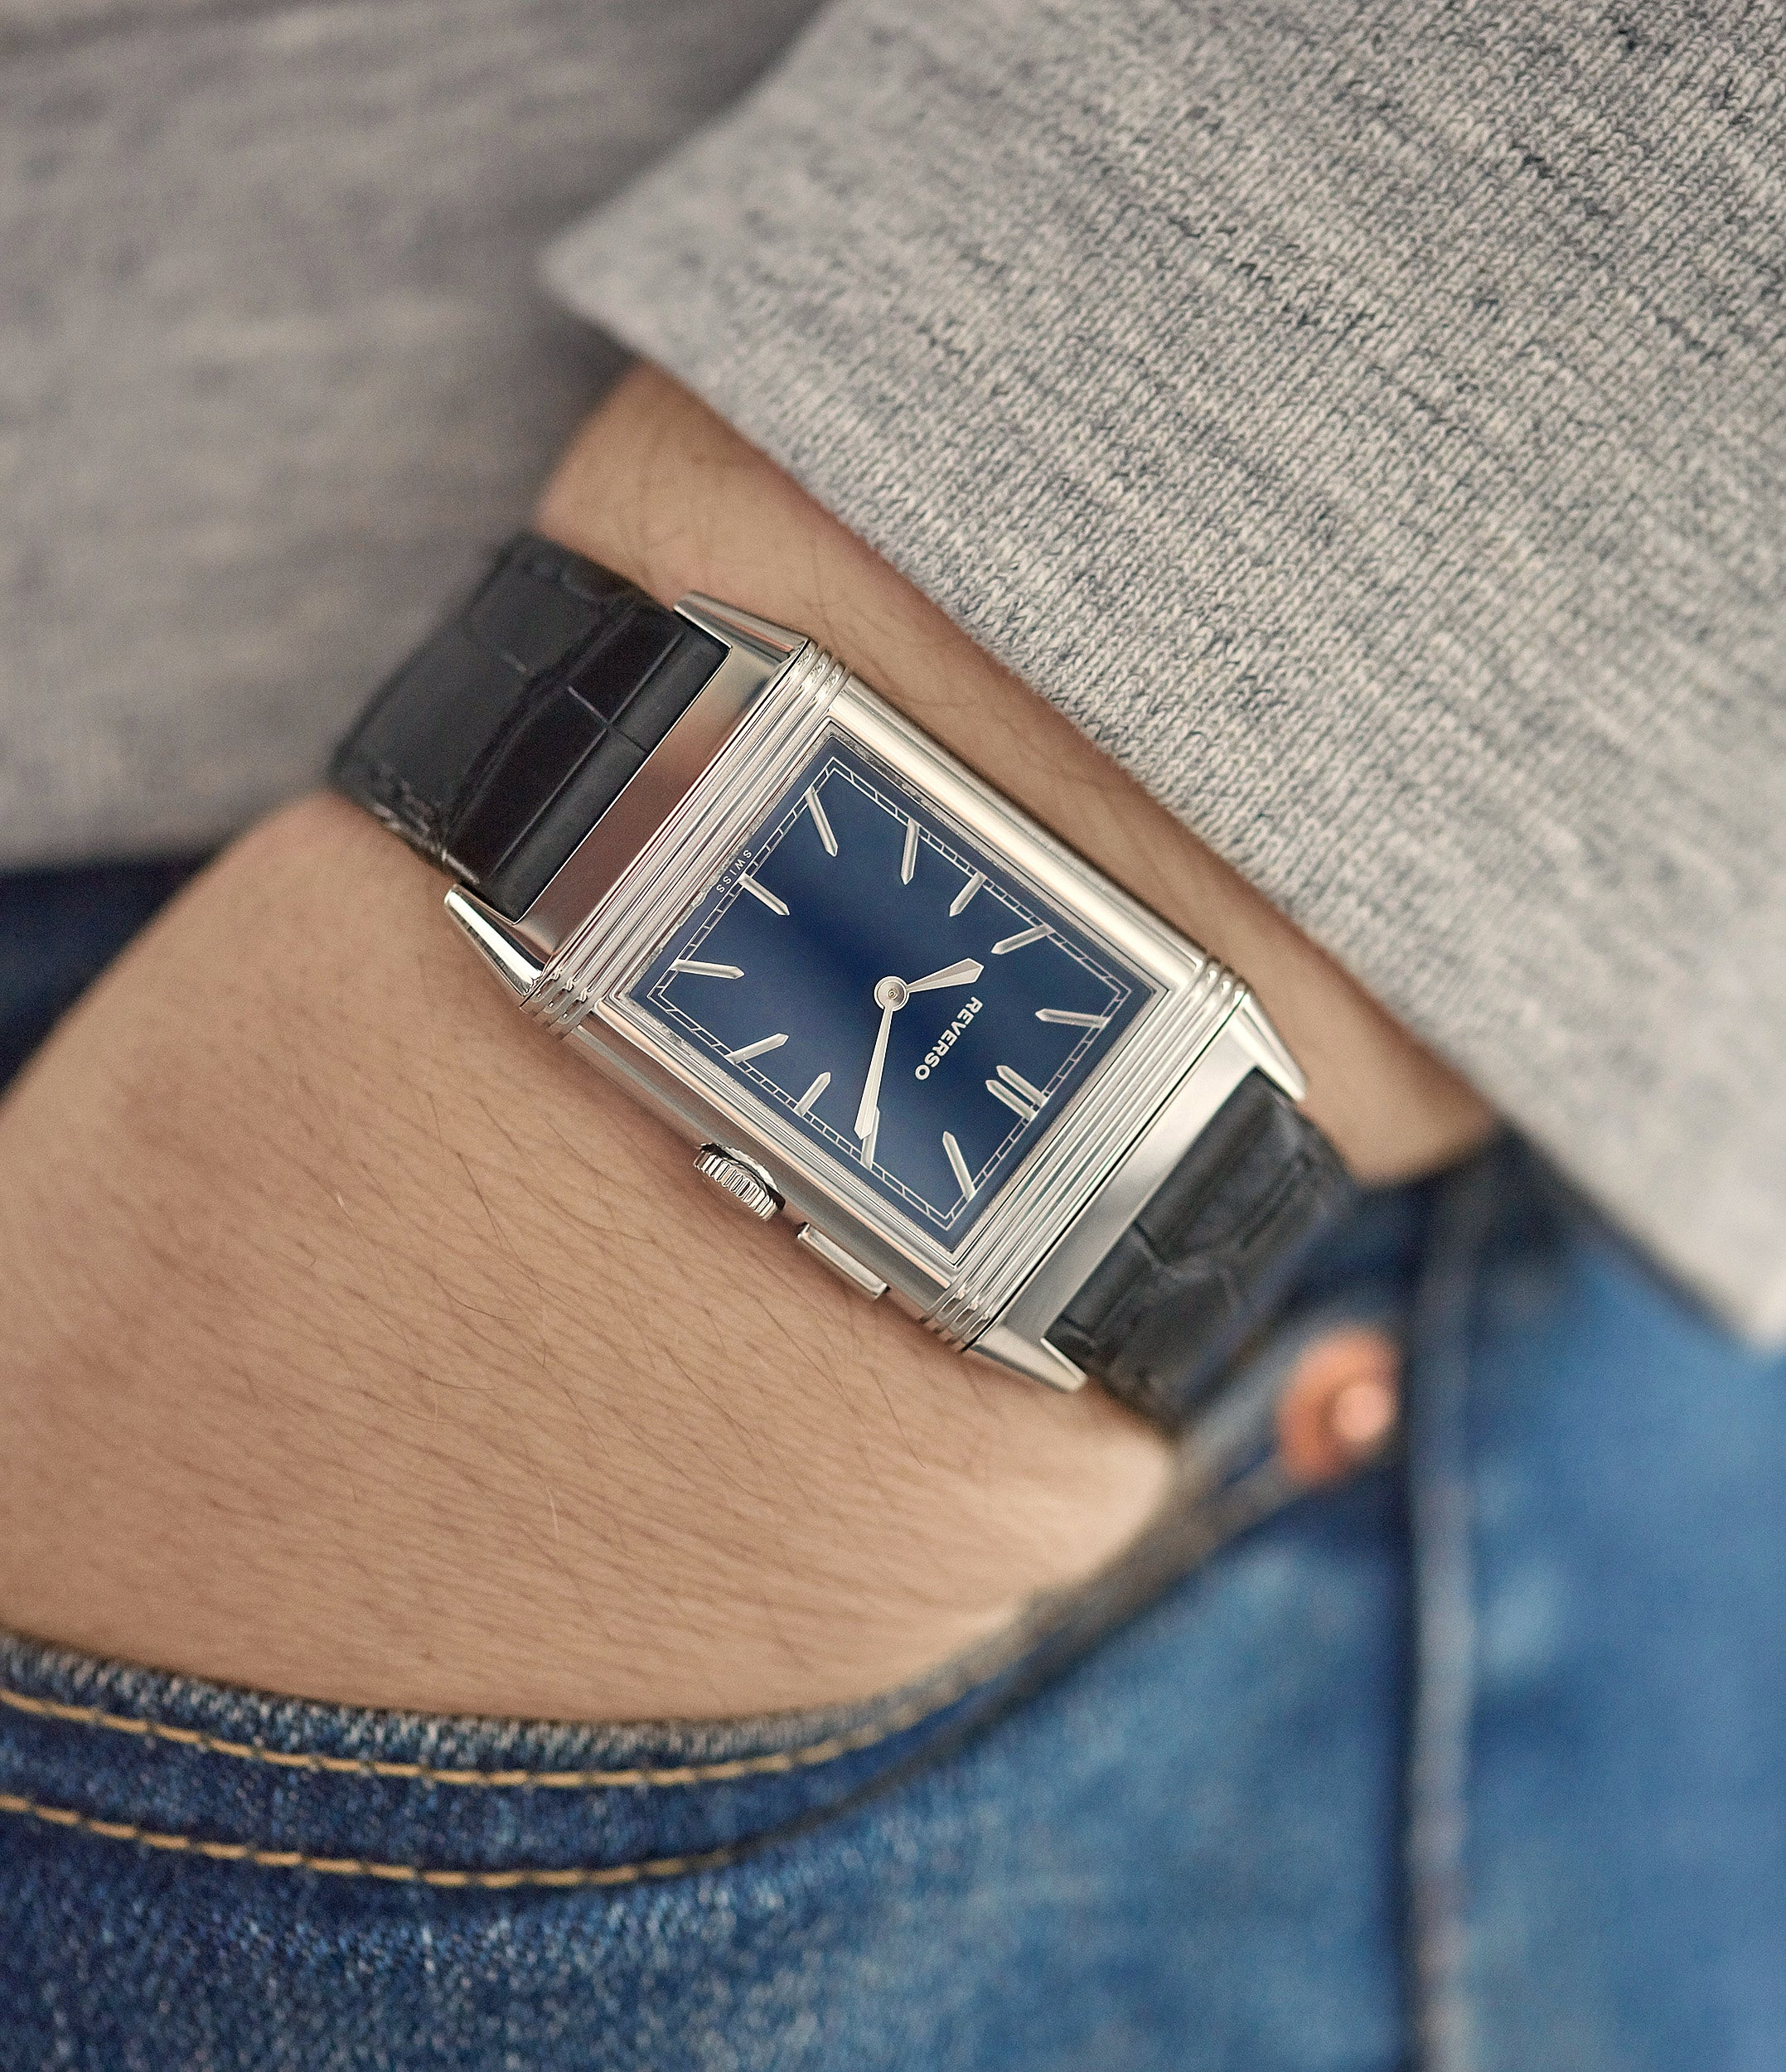 men's classic dress watch Duoface Blue Jaeger-LeCoultre Grand Reverso Ultra-Thin Boutique Edition 278.8.54 steel preowned traveller